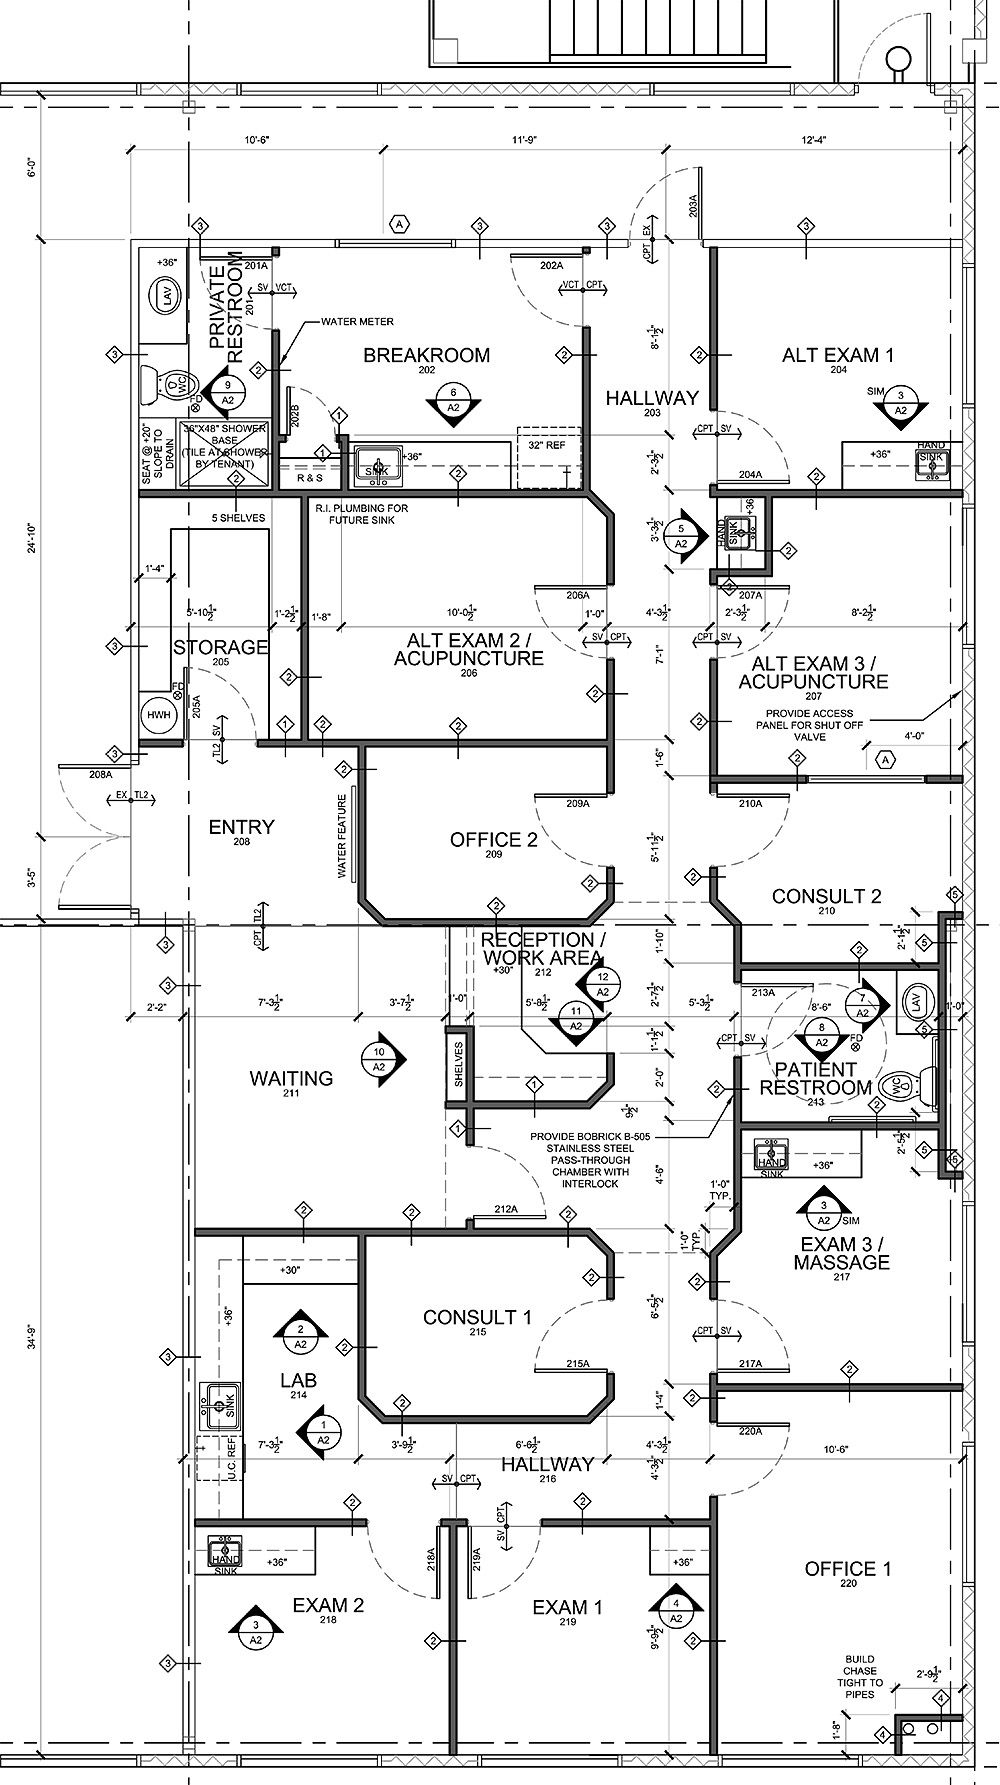 Medical office design plans advice for medical office for Commercial building floor plans free